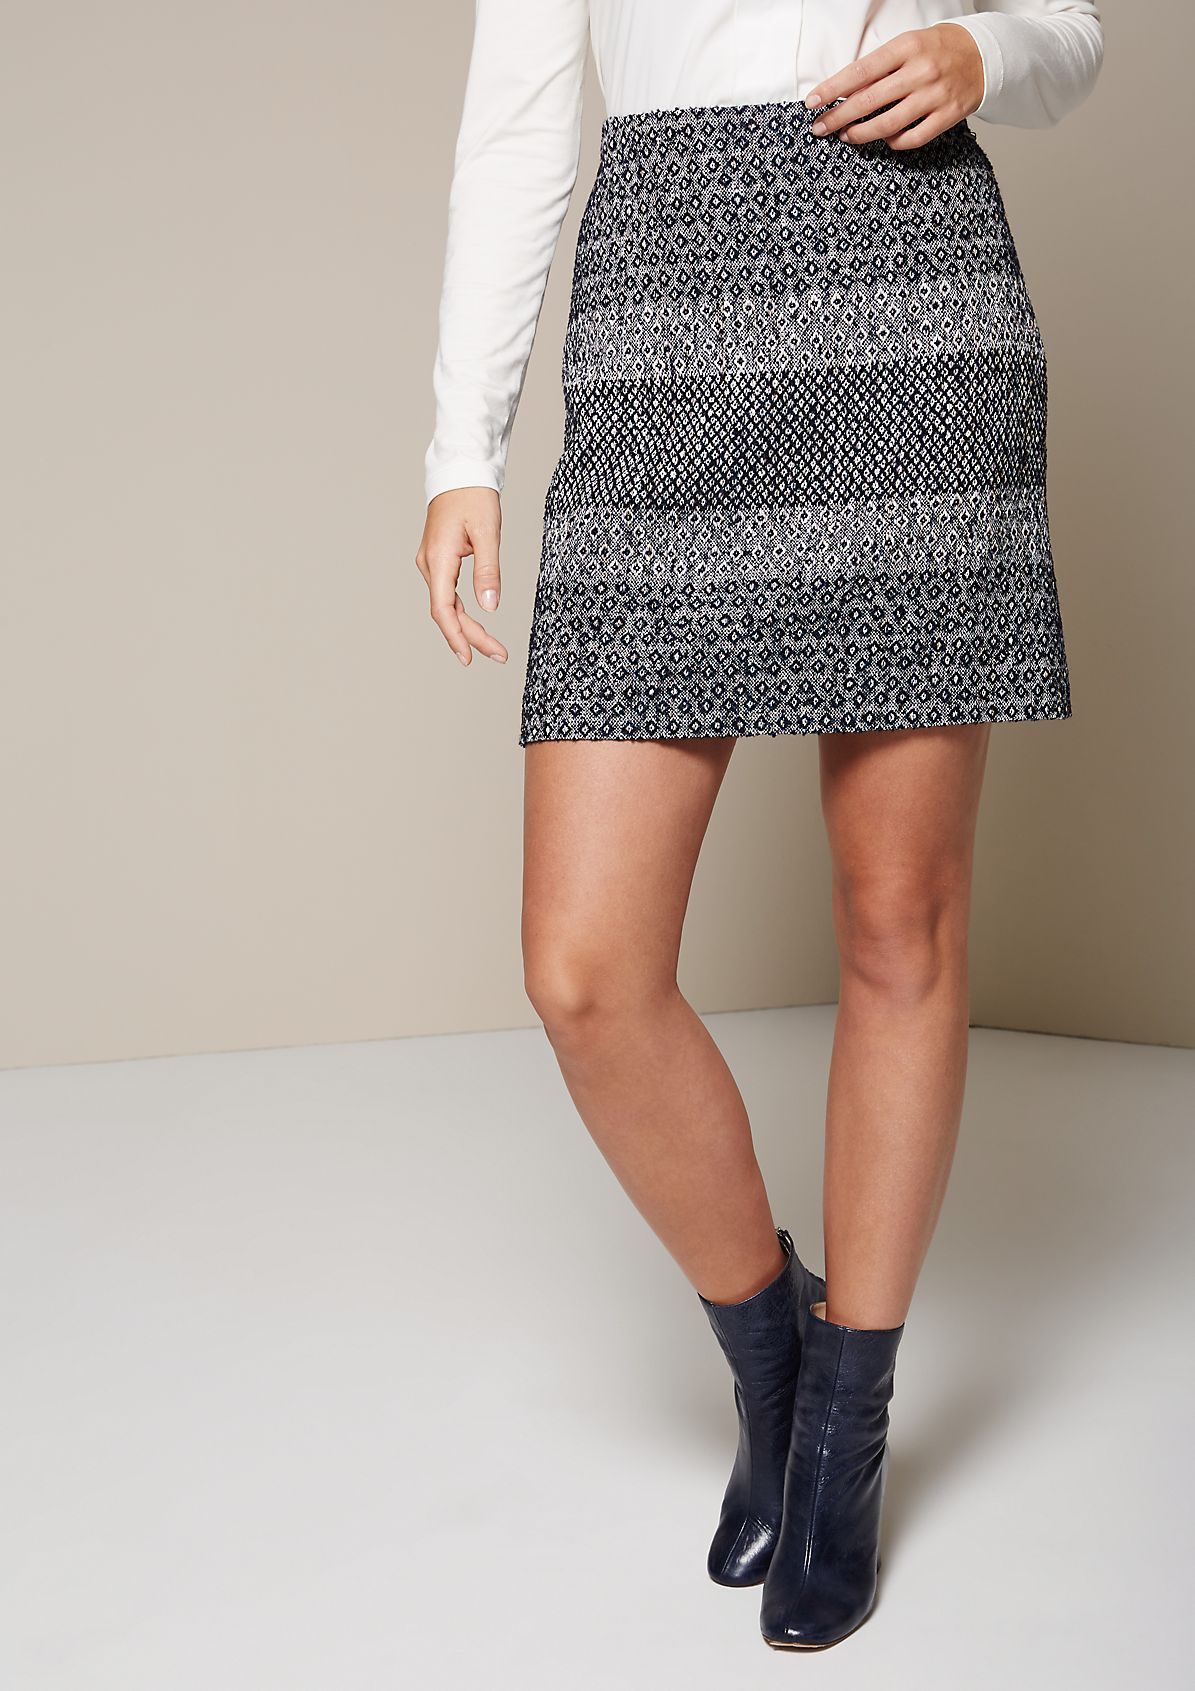 Beautiful, casual skirt with a lovely jacquard pattern from s.Oliver